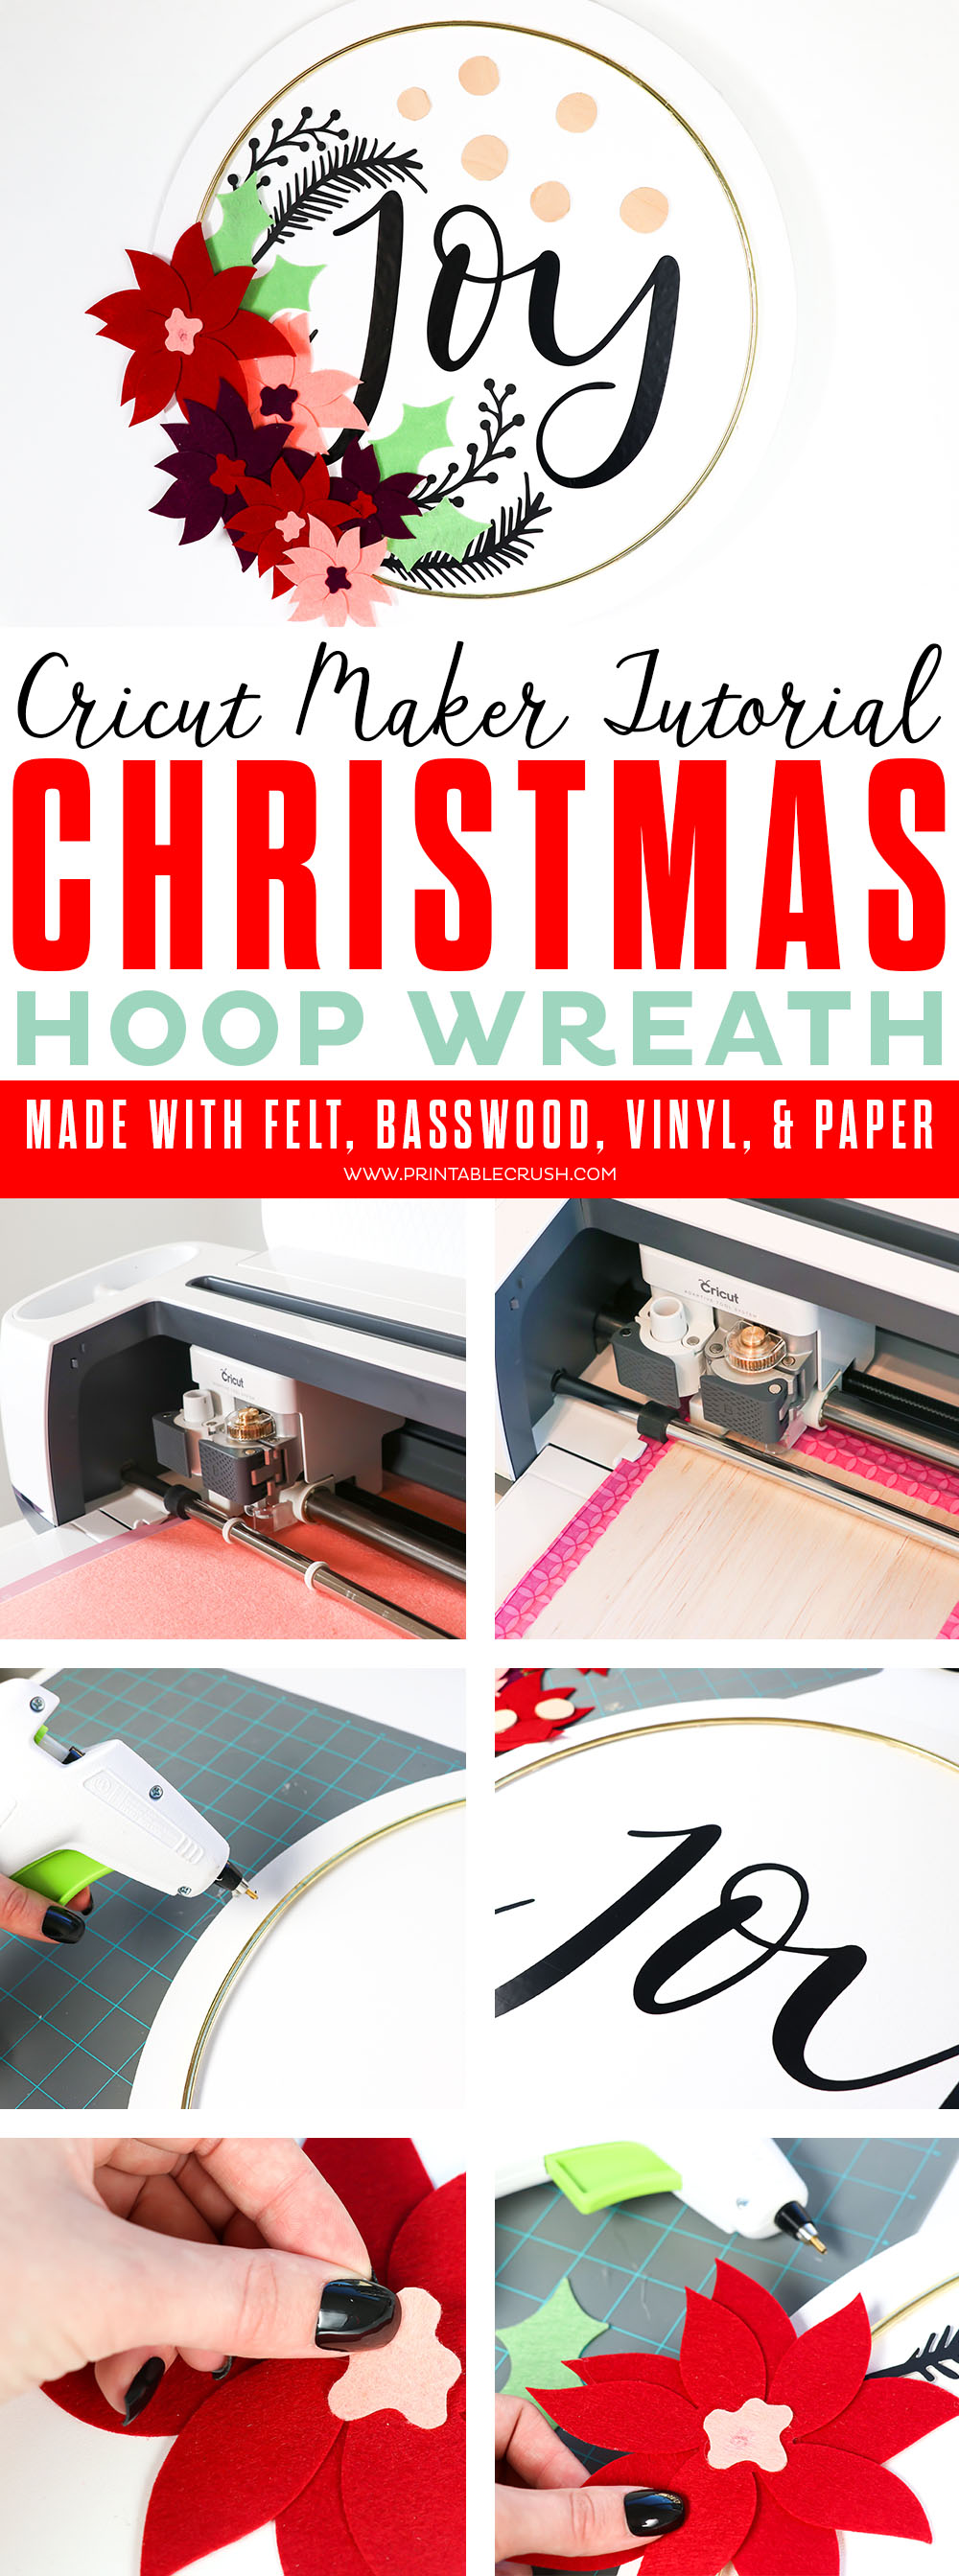 Make this gorgeous Canvas Christmas Hoop Wreath Tutorial using felt, paper, vinyl, and basswood cut outs from the Cricut Maker.